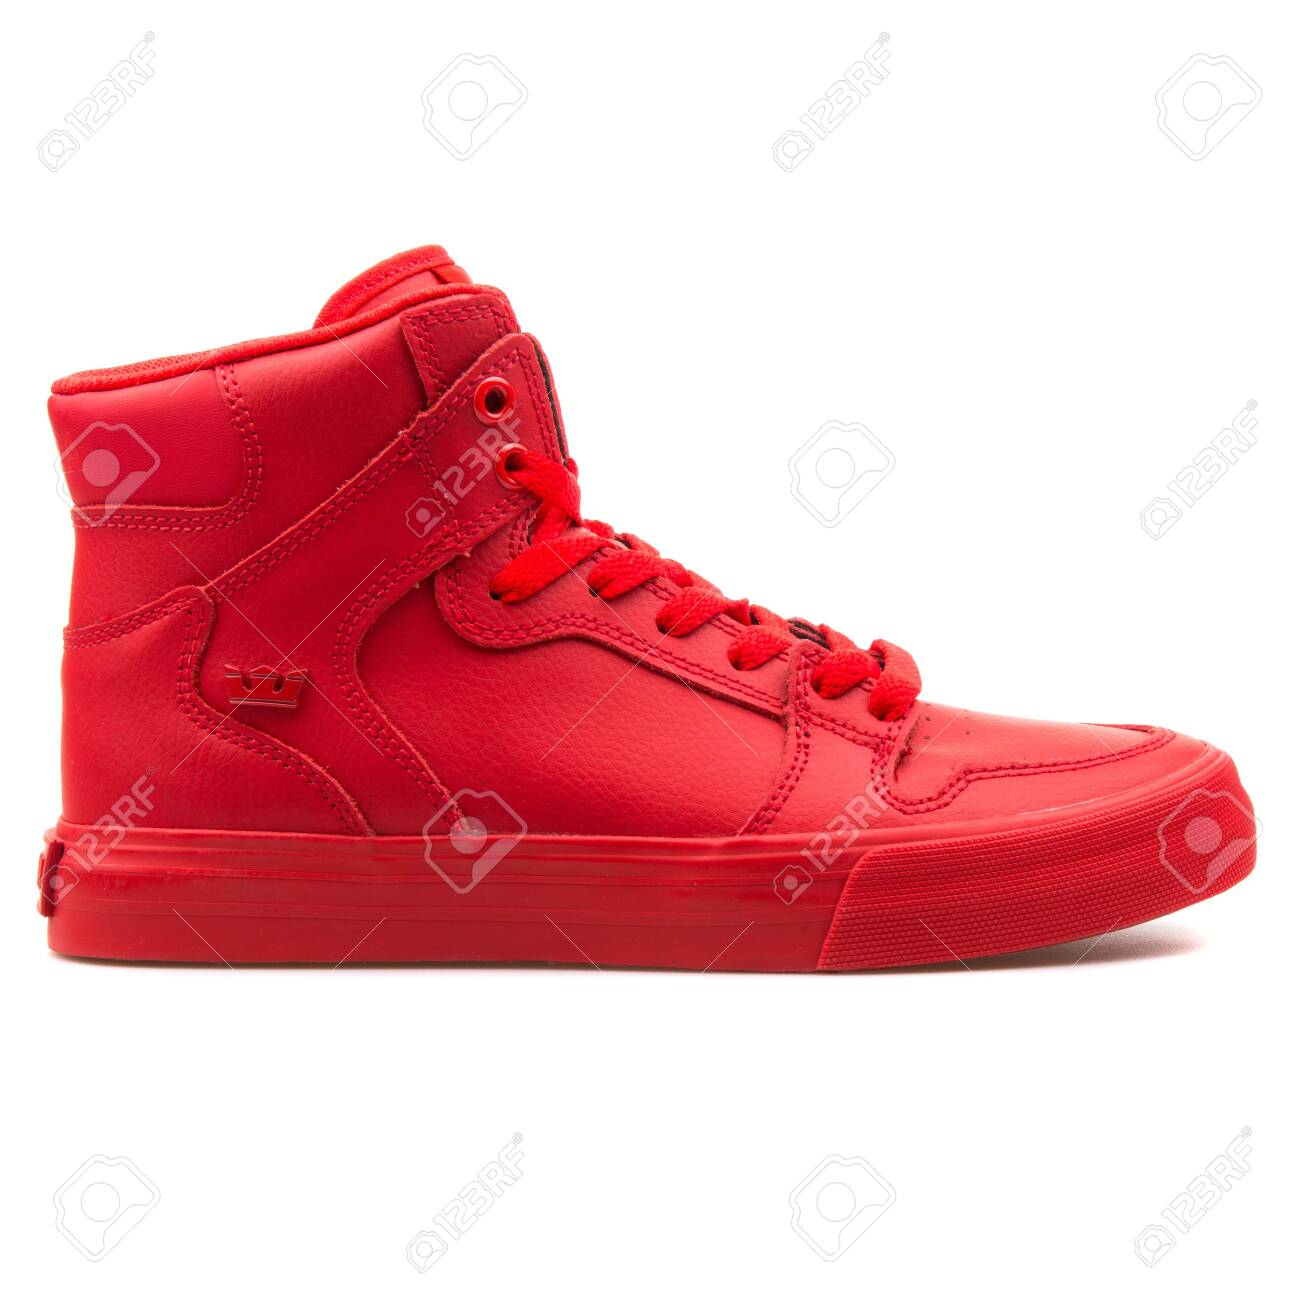 Supra Vaider Red Sneaker On.. Stock